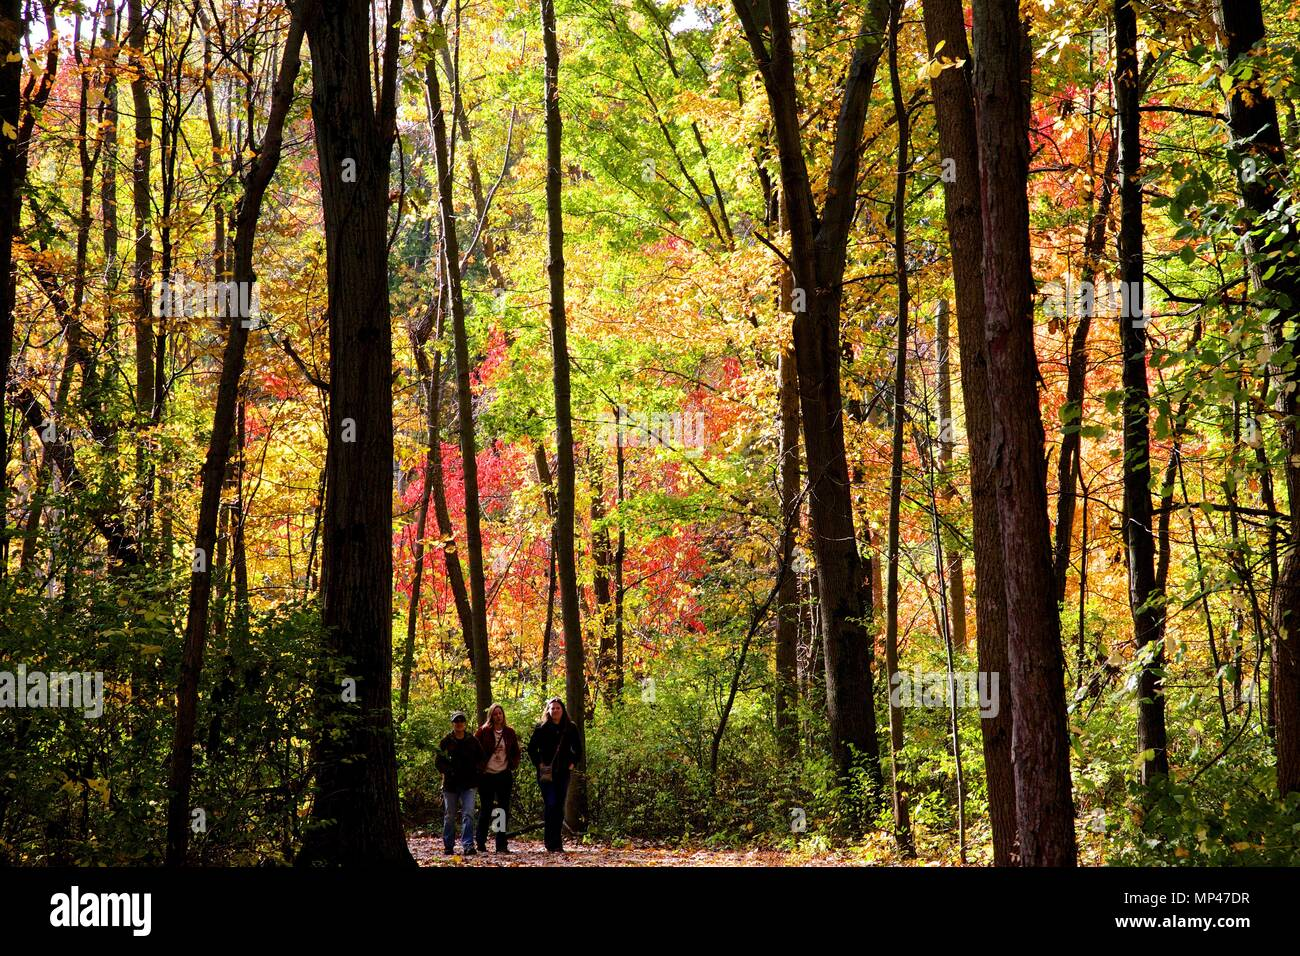 Hickers enjoying a full spectrum of fall colors. - Stock Image